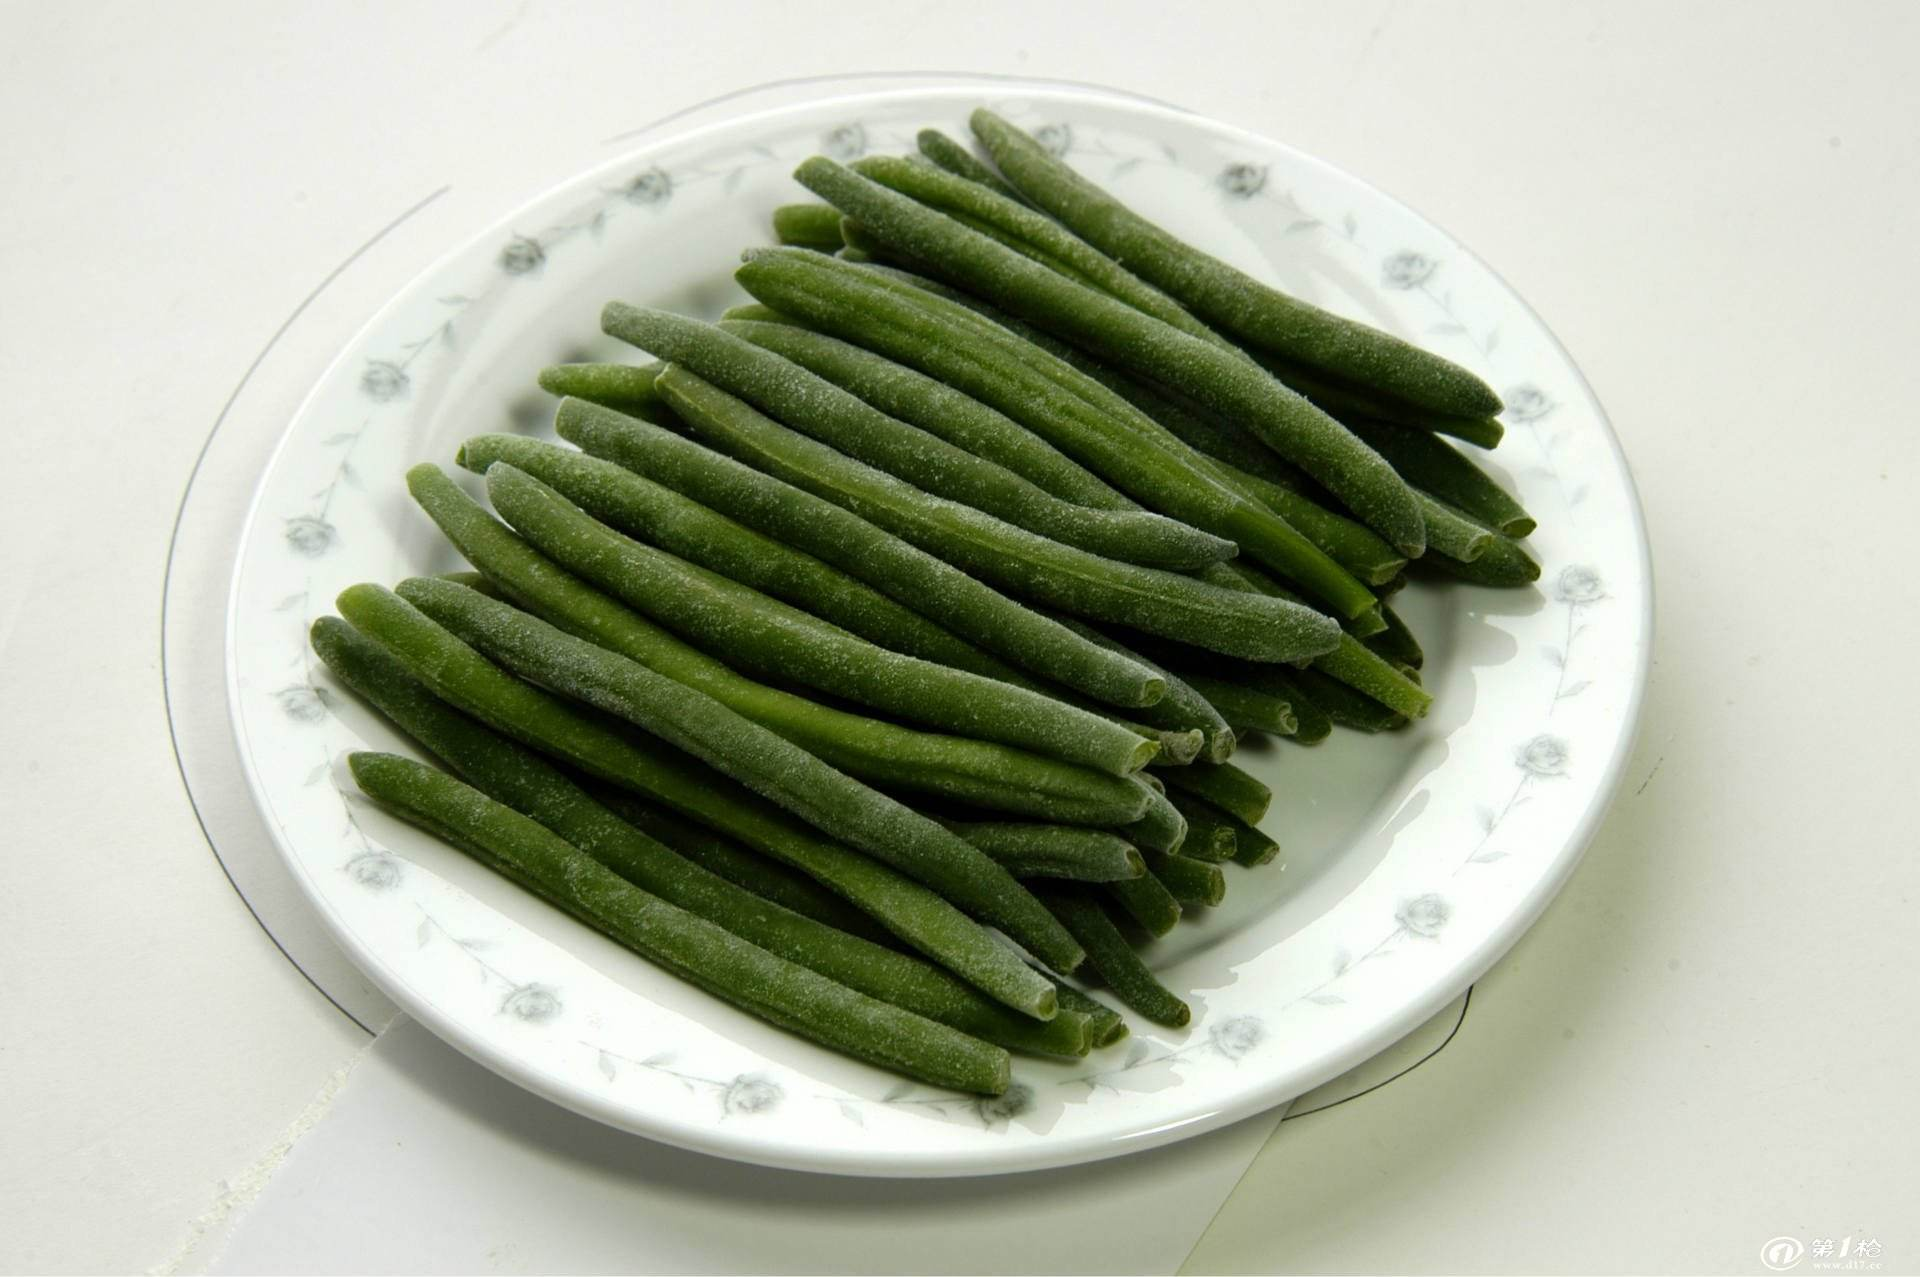 Frozen Organic Green Bean Cuts